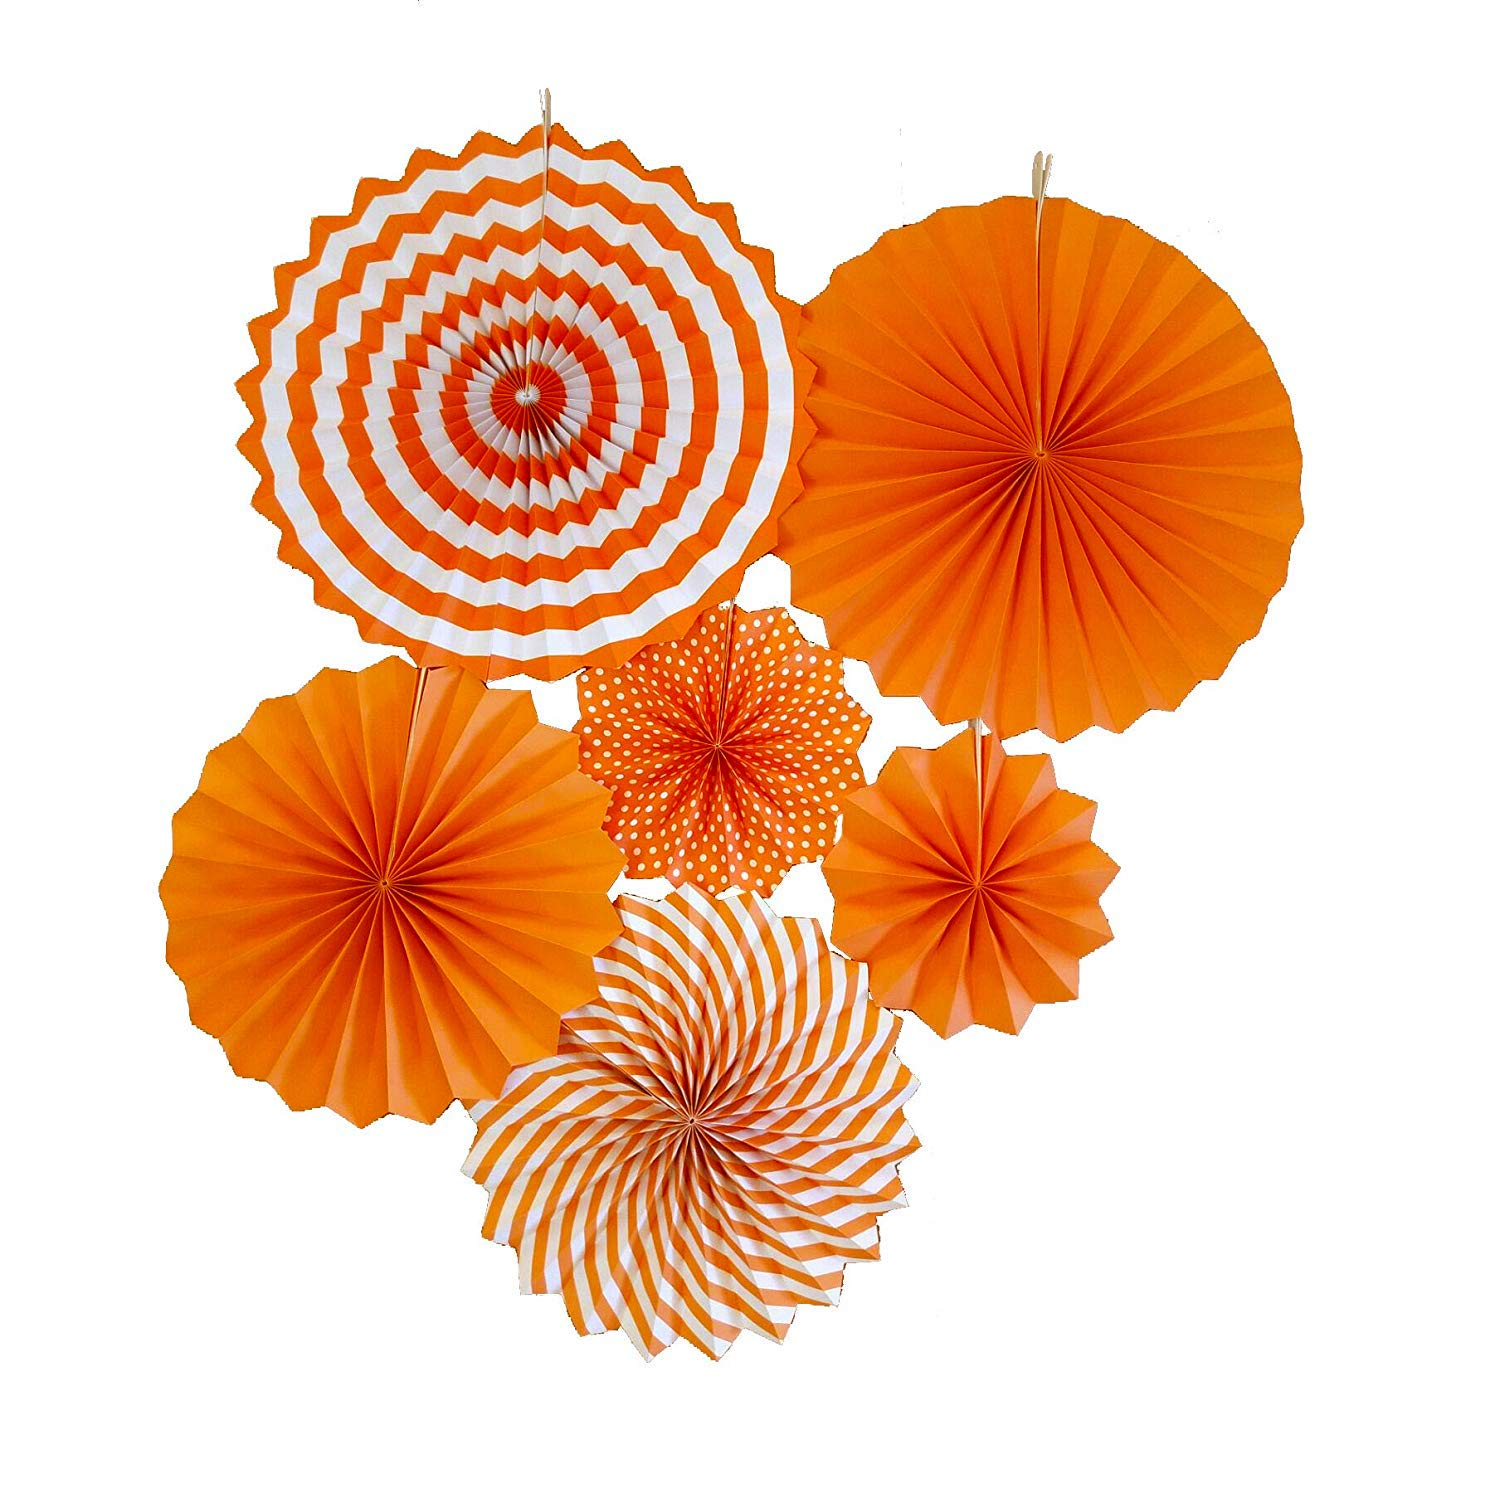 LayYun Colorful Hanging Paper Fans -Fiesta Round Party Paper Garland Decorations, Party Supplies for Bridal Wedding, Birthday Party, Baby Shower, Graduation Event Accessories, Set of 6 (Orange)